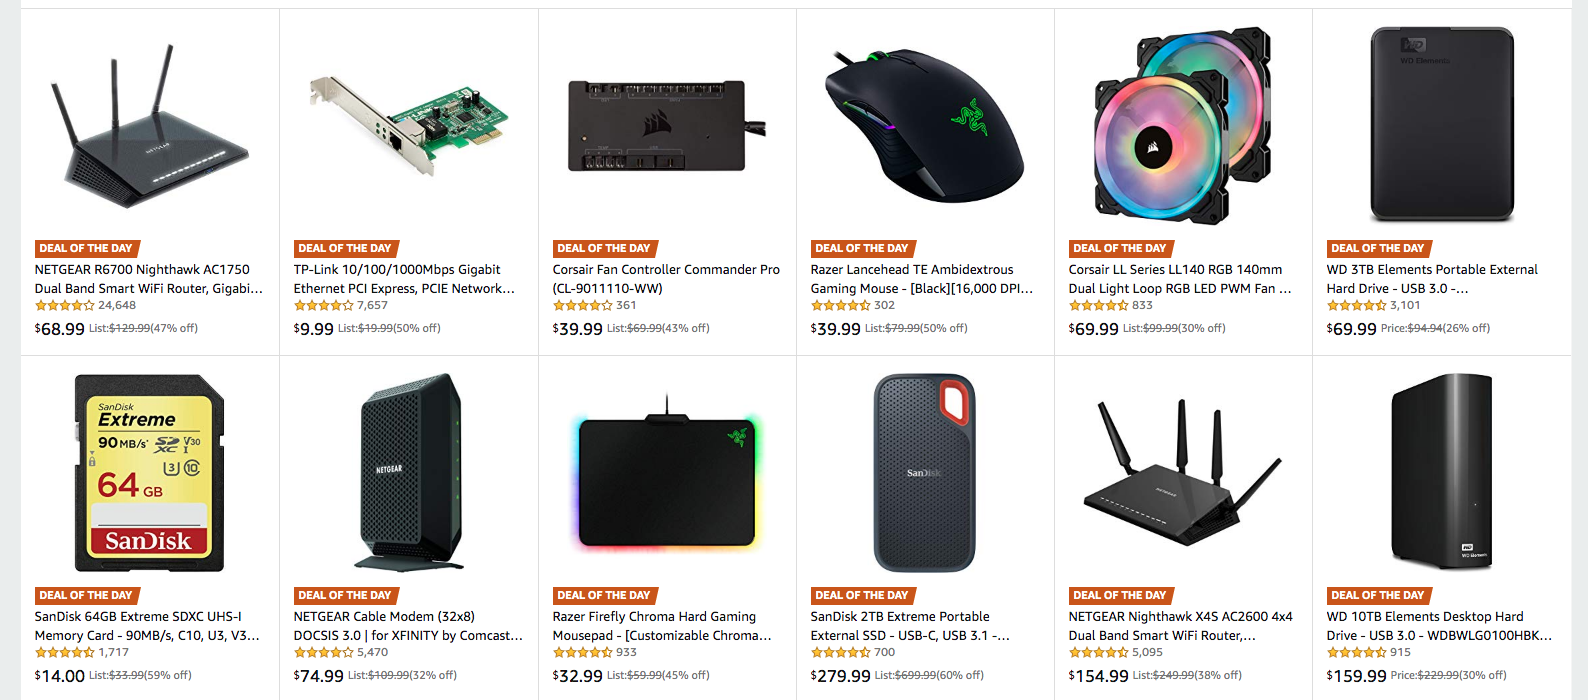 PC components and accessories are up to 60 percent off in an Amazon deal of the day